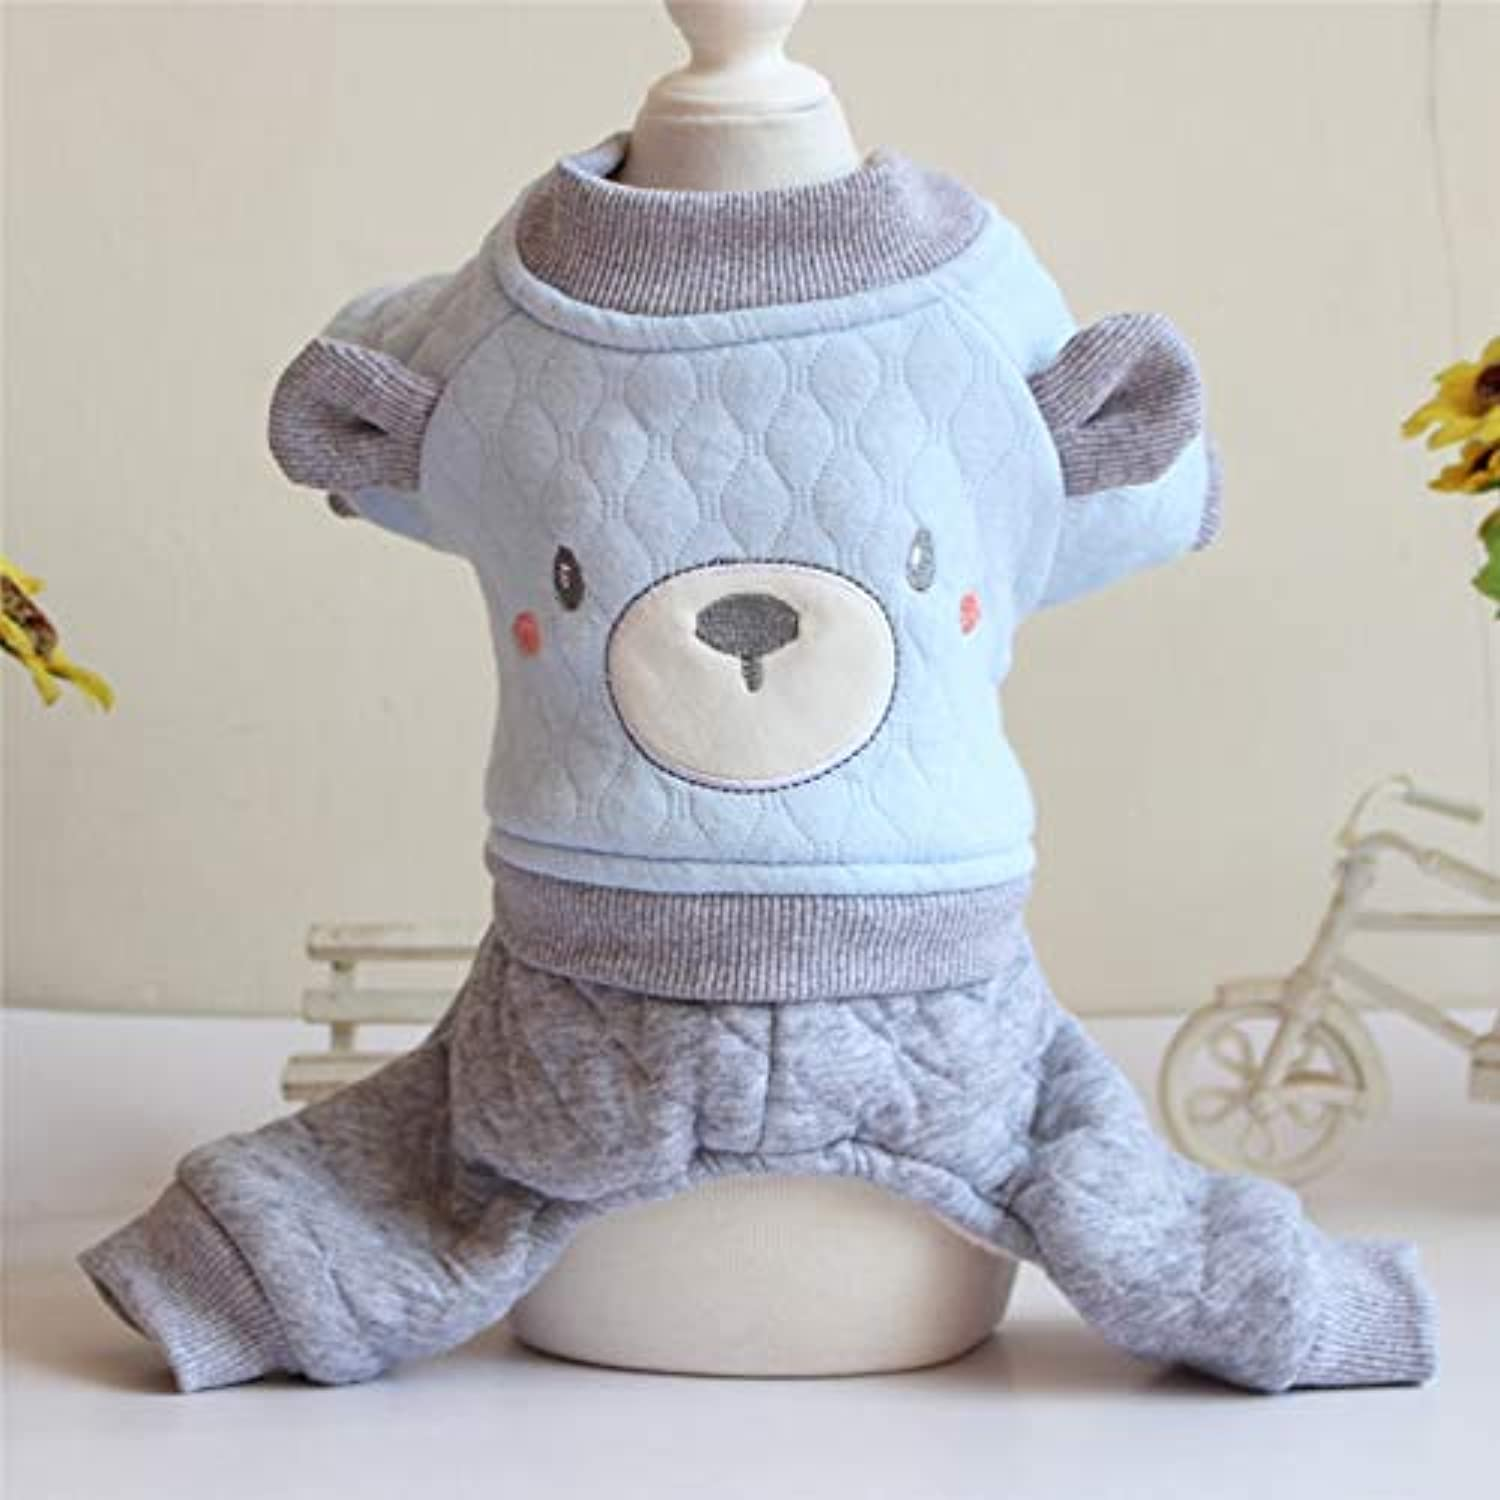 Doggy Costume New pet Clothes Autumn and Winter Clothes Dog Teddy Than Bear Four feet Cartoon Embroidered Transformation Onesies (color   bluee, Size   S) Pet Dog Clothes (color   bluee, Size   M)